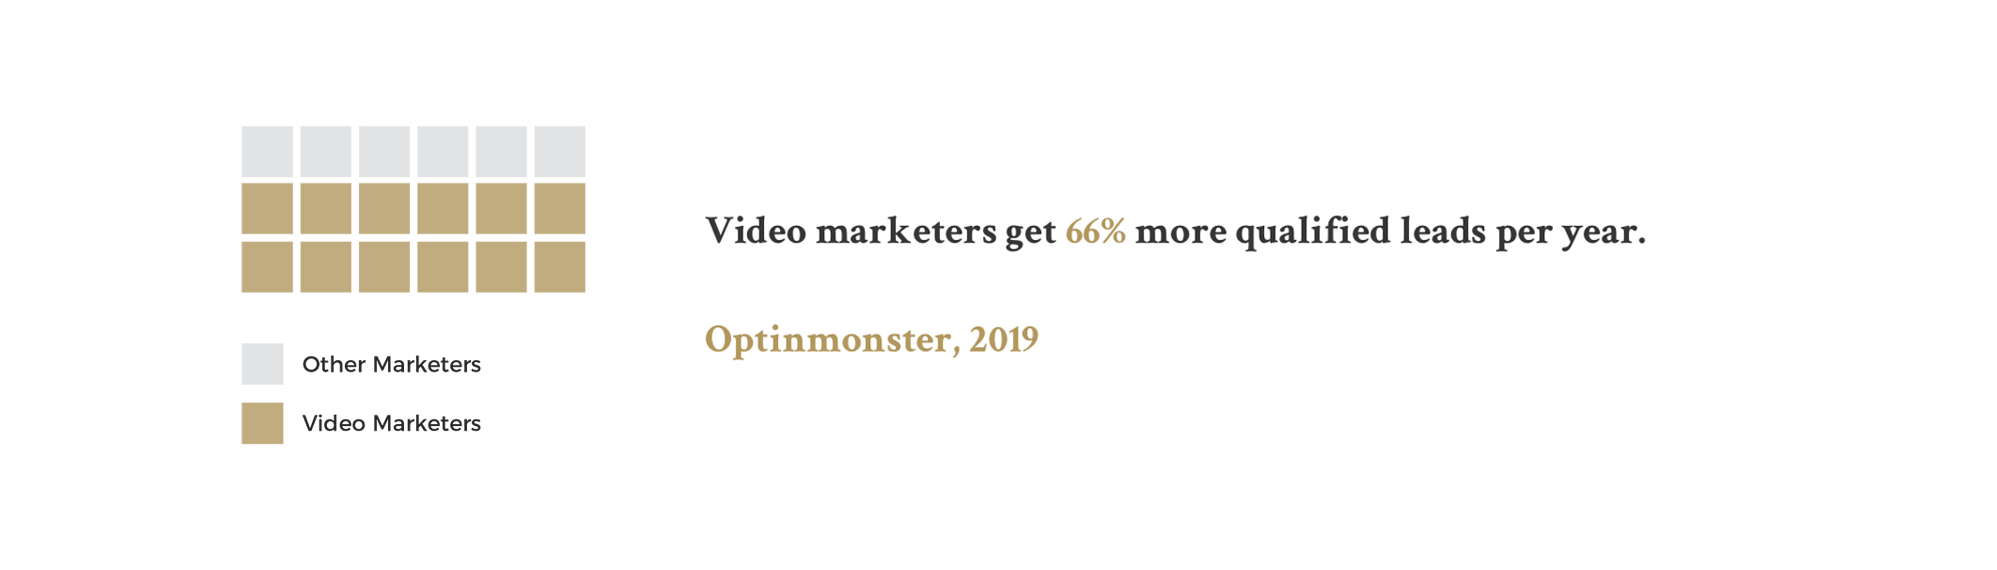 Video marketers stats